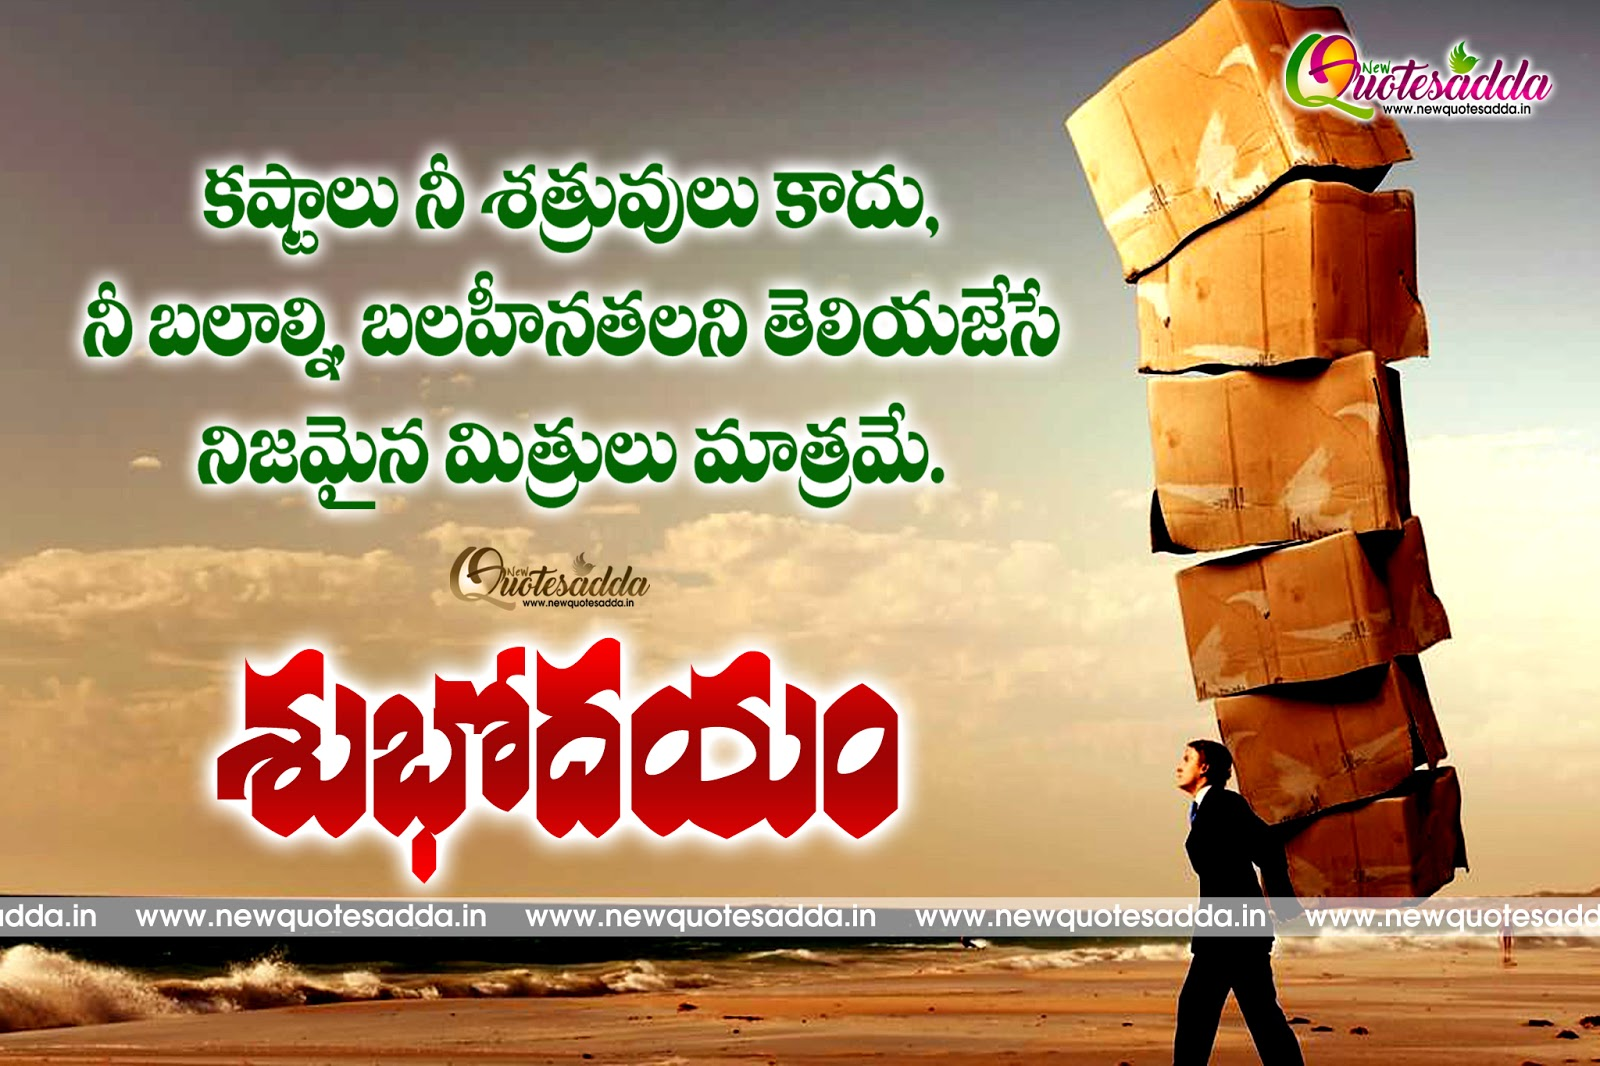 Best Good Morning Quotes Images In Telugu For Facebook Newquotesadda